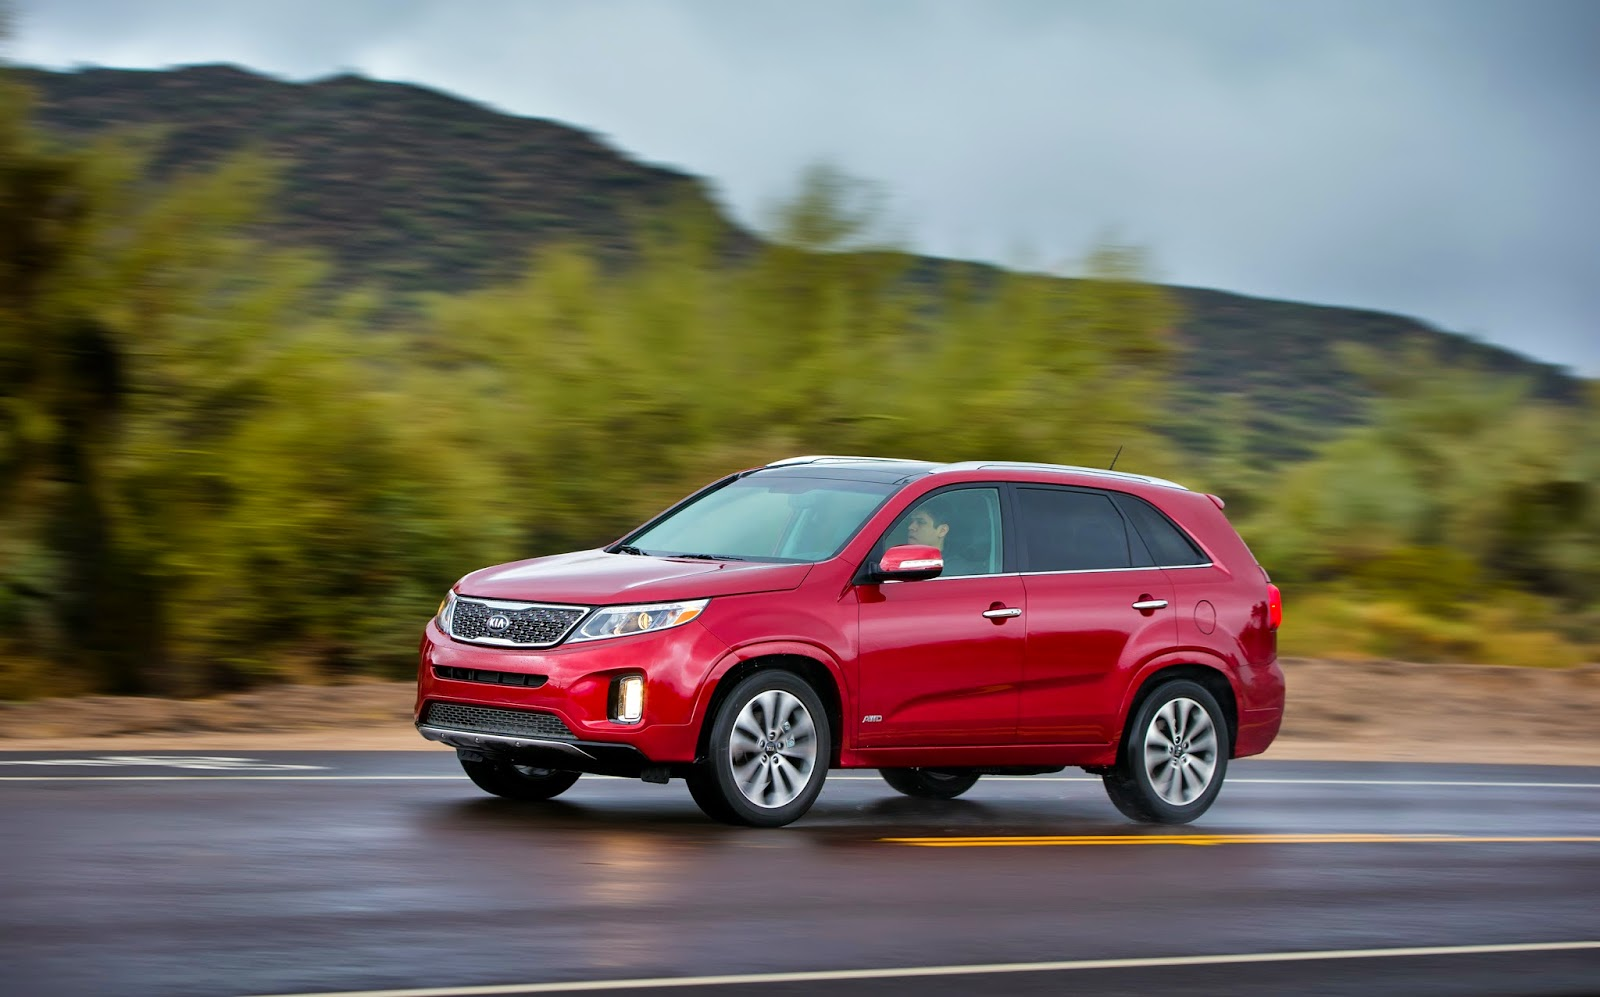 Front 3/4 view of 2015 Kia Sorento